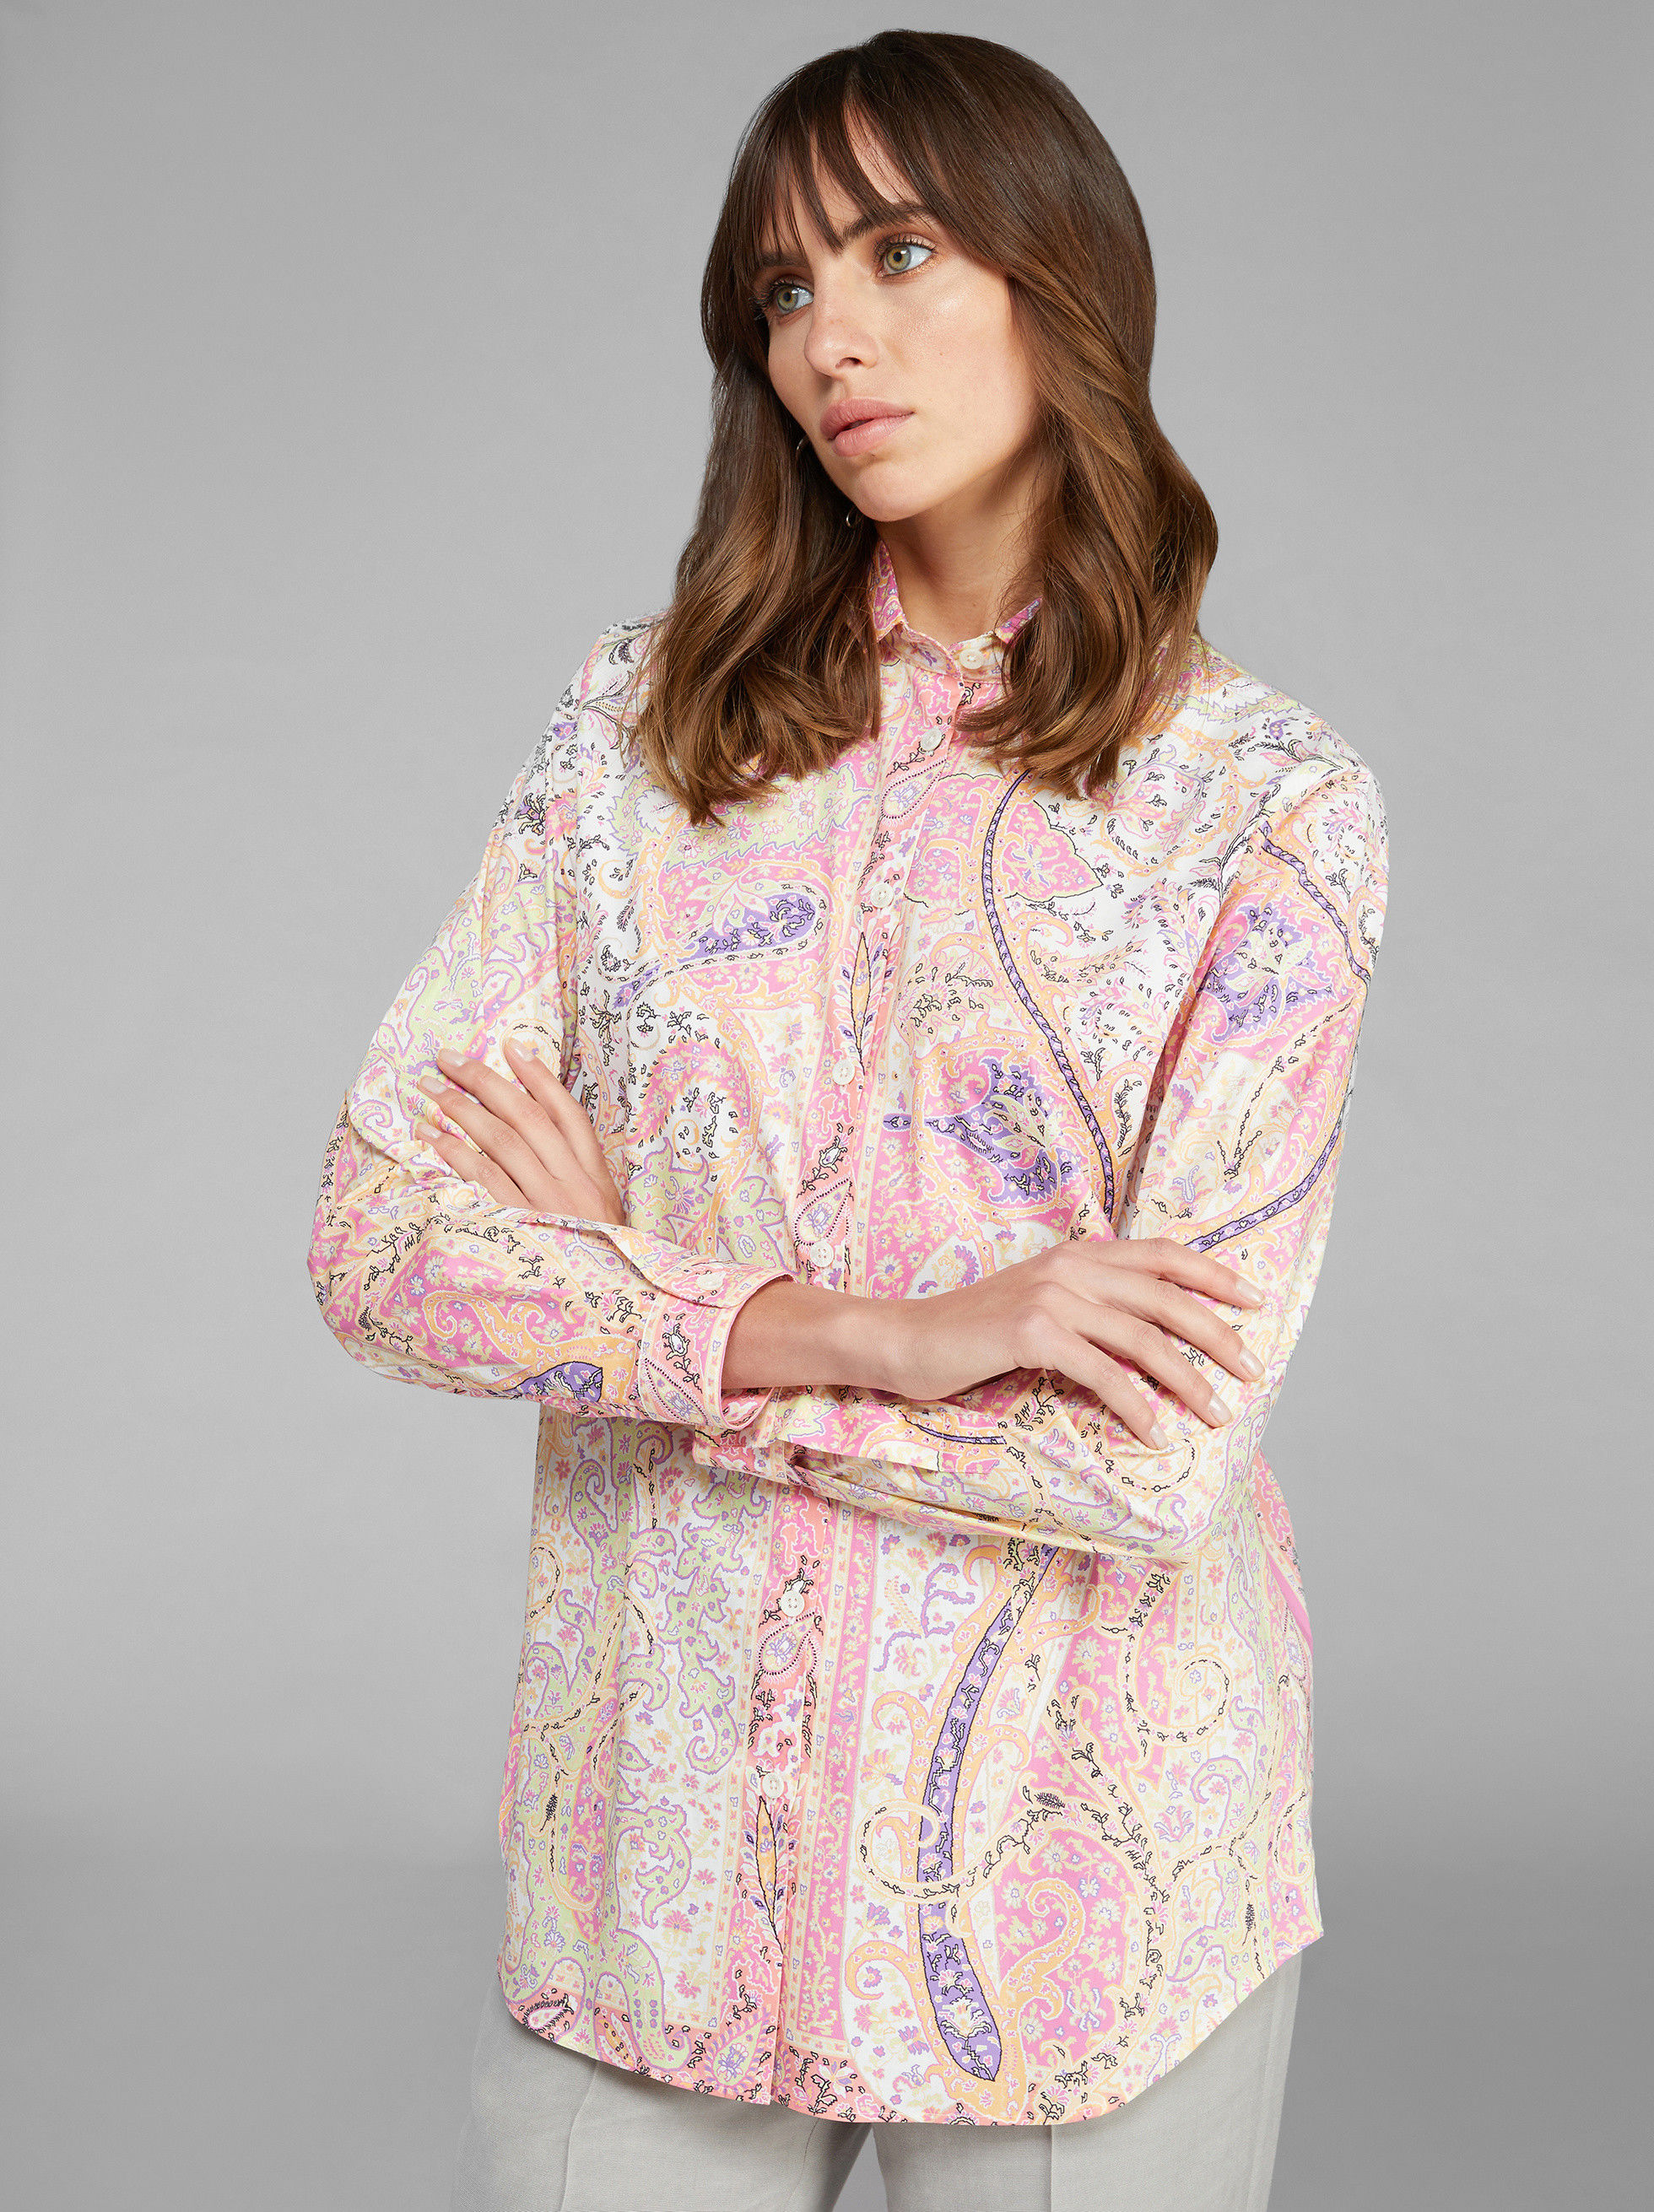 GRAPHIC PAISLEY PATTERN SHIRT